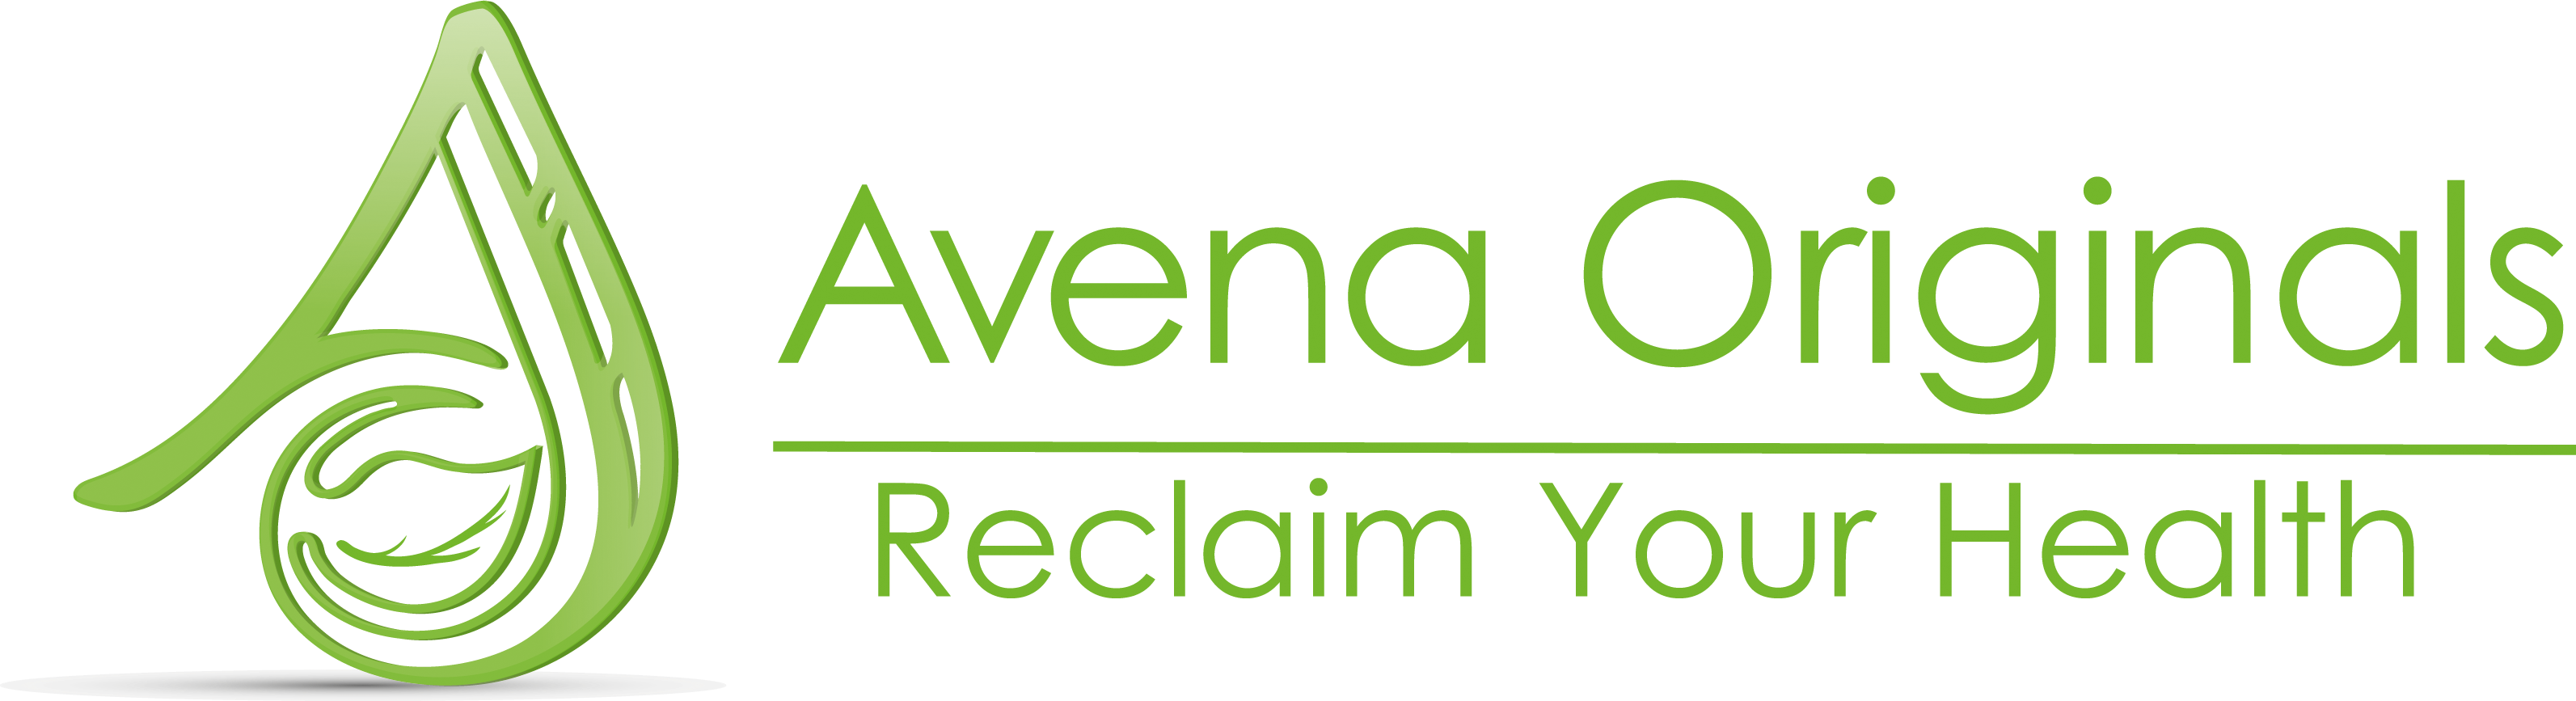 Avena Originals probiotics